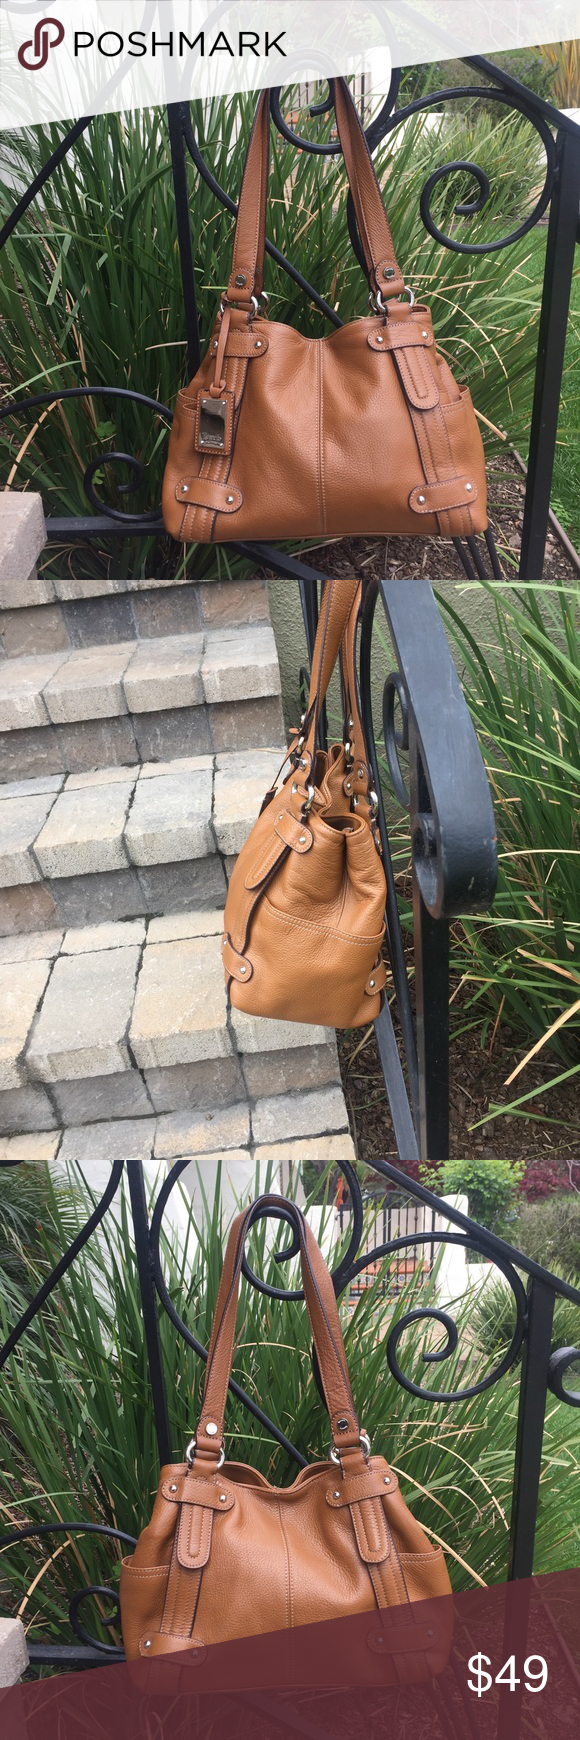 """Tignanello Large Bag.  Gorgeous. Tignanello Large Bag.  Gorgeous.  12"""" x 9 1/4"""" x 5 1/2"""". Two exterior pockets. Interior has 3 compartments with one with zipper and 3 pockets.  Body of genuine leather.  Trim PVC. Lining 100% polyester. Color best seen in pic one.  Like new.  Gorgeous. Tignanello Bags"""